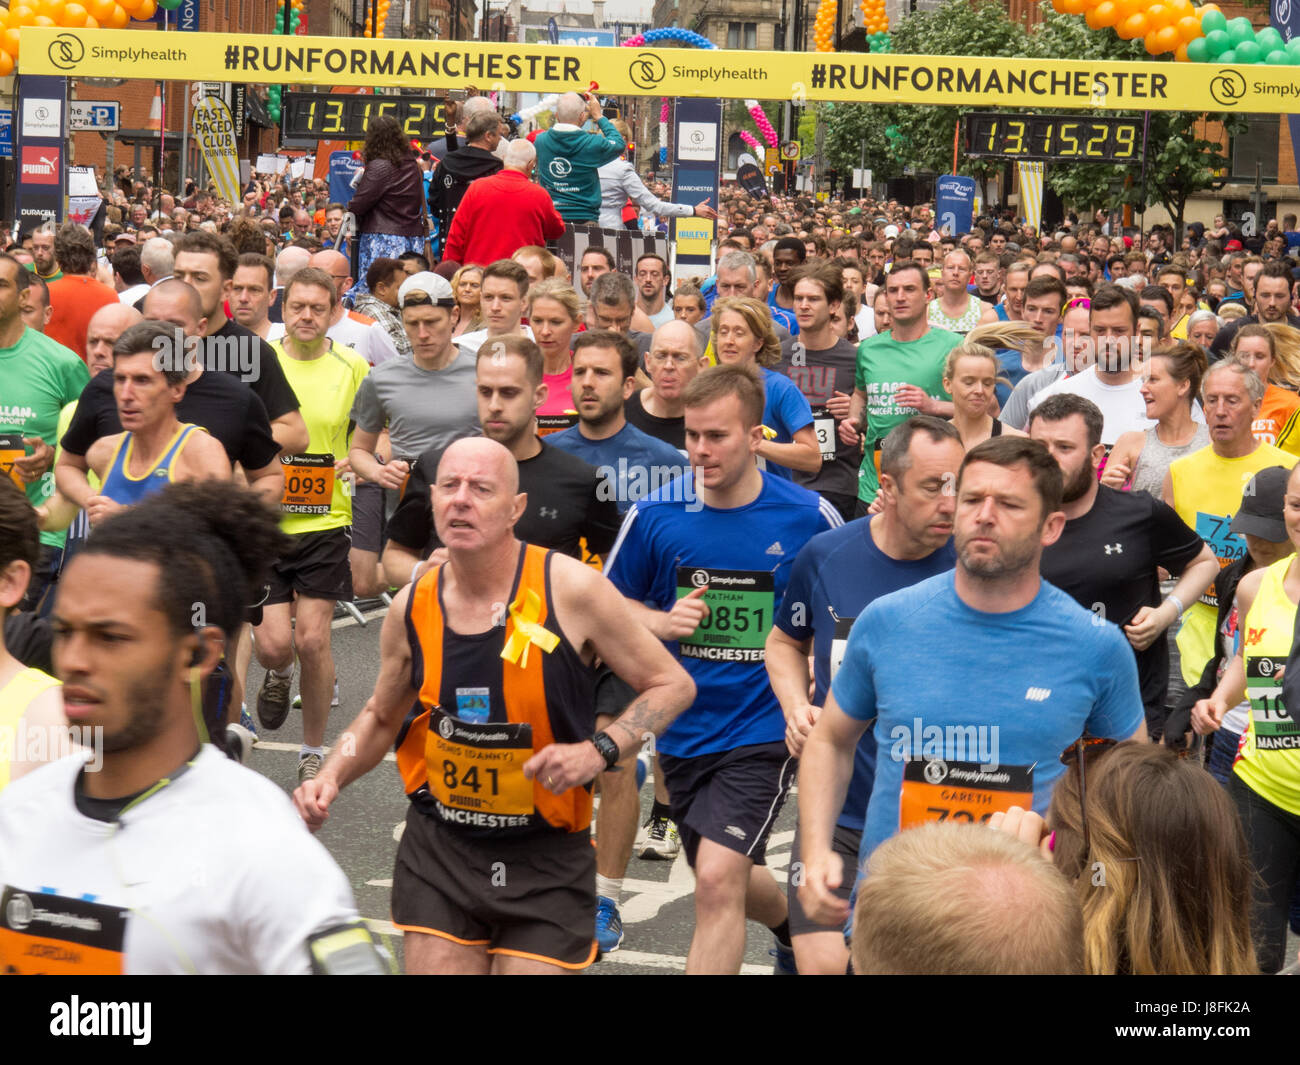 Runners at the Great Manchester Run 2017 - Stock Image